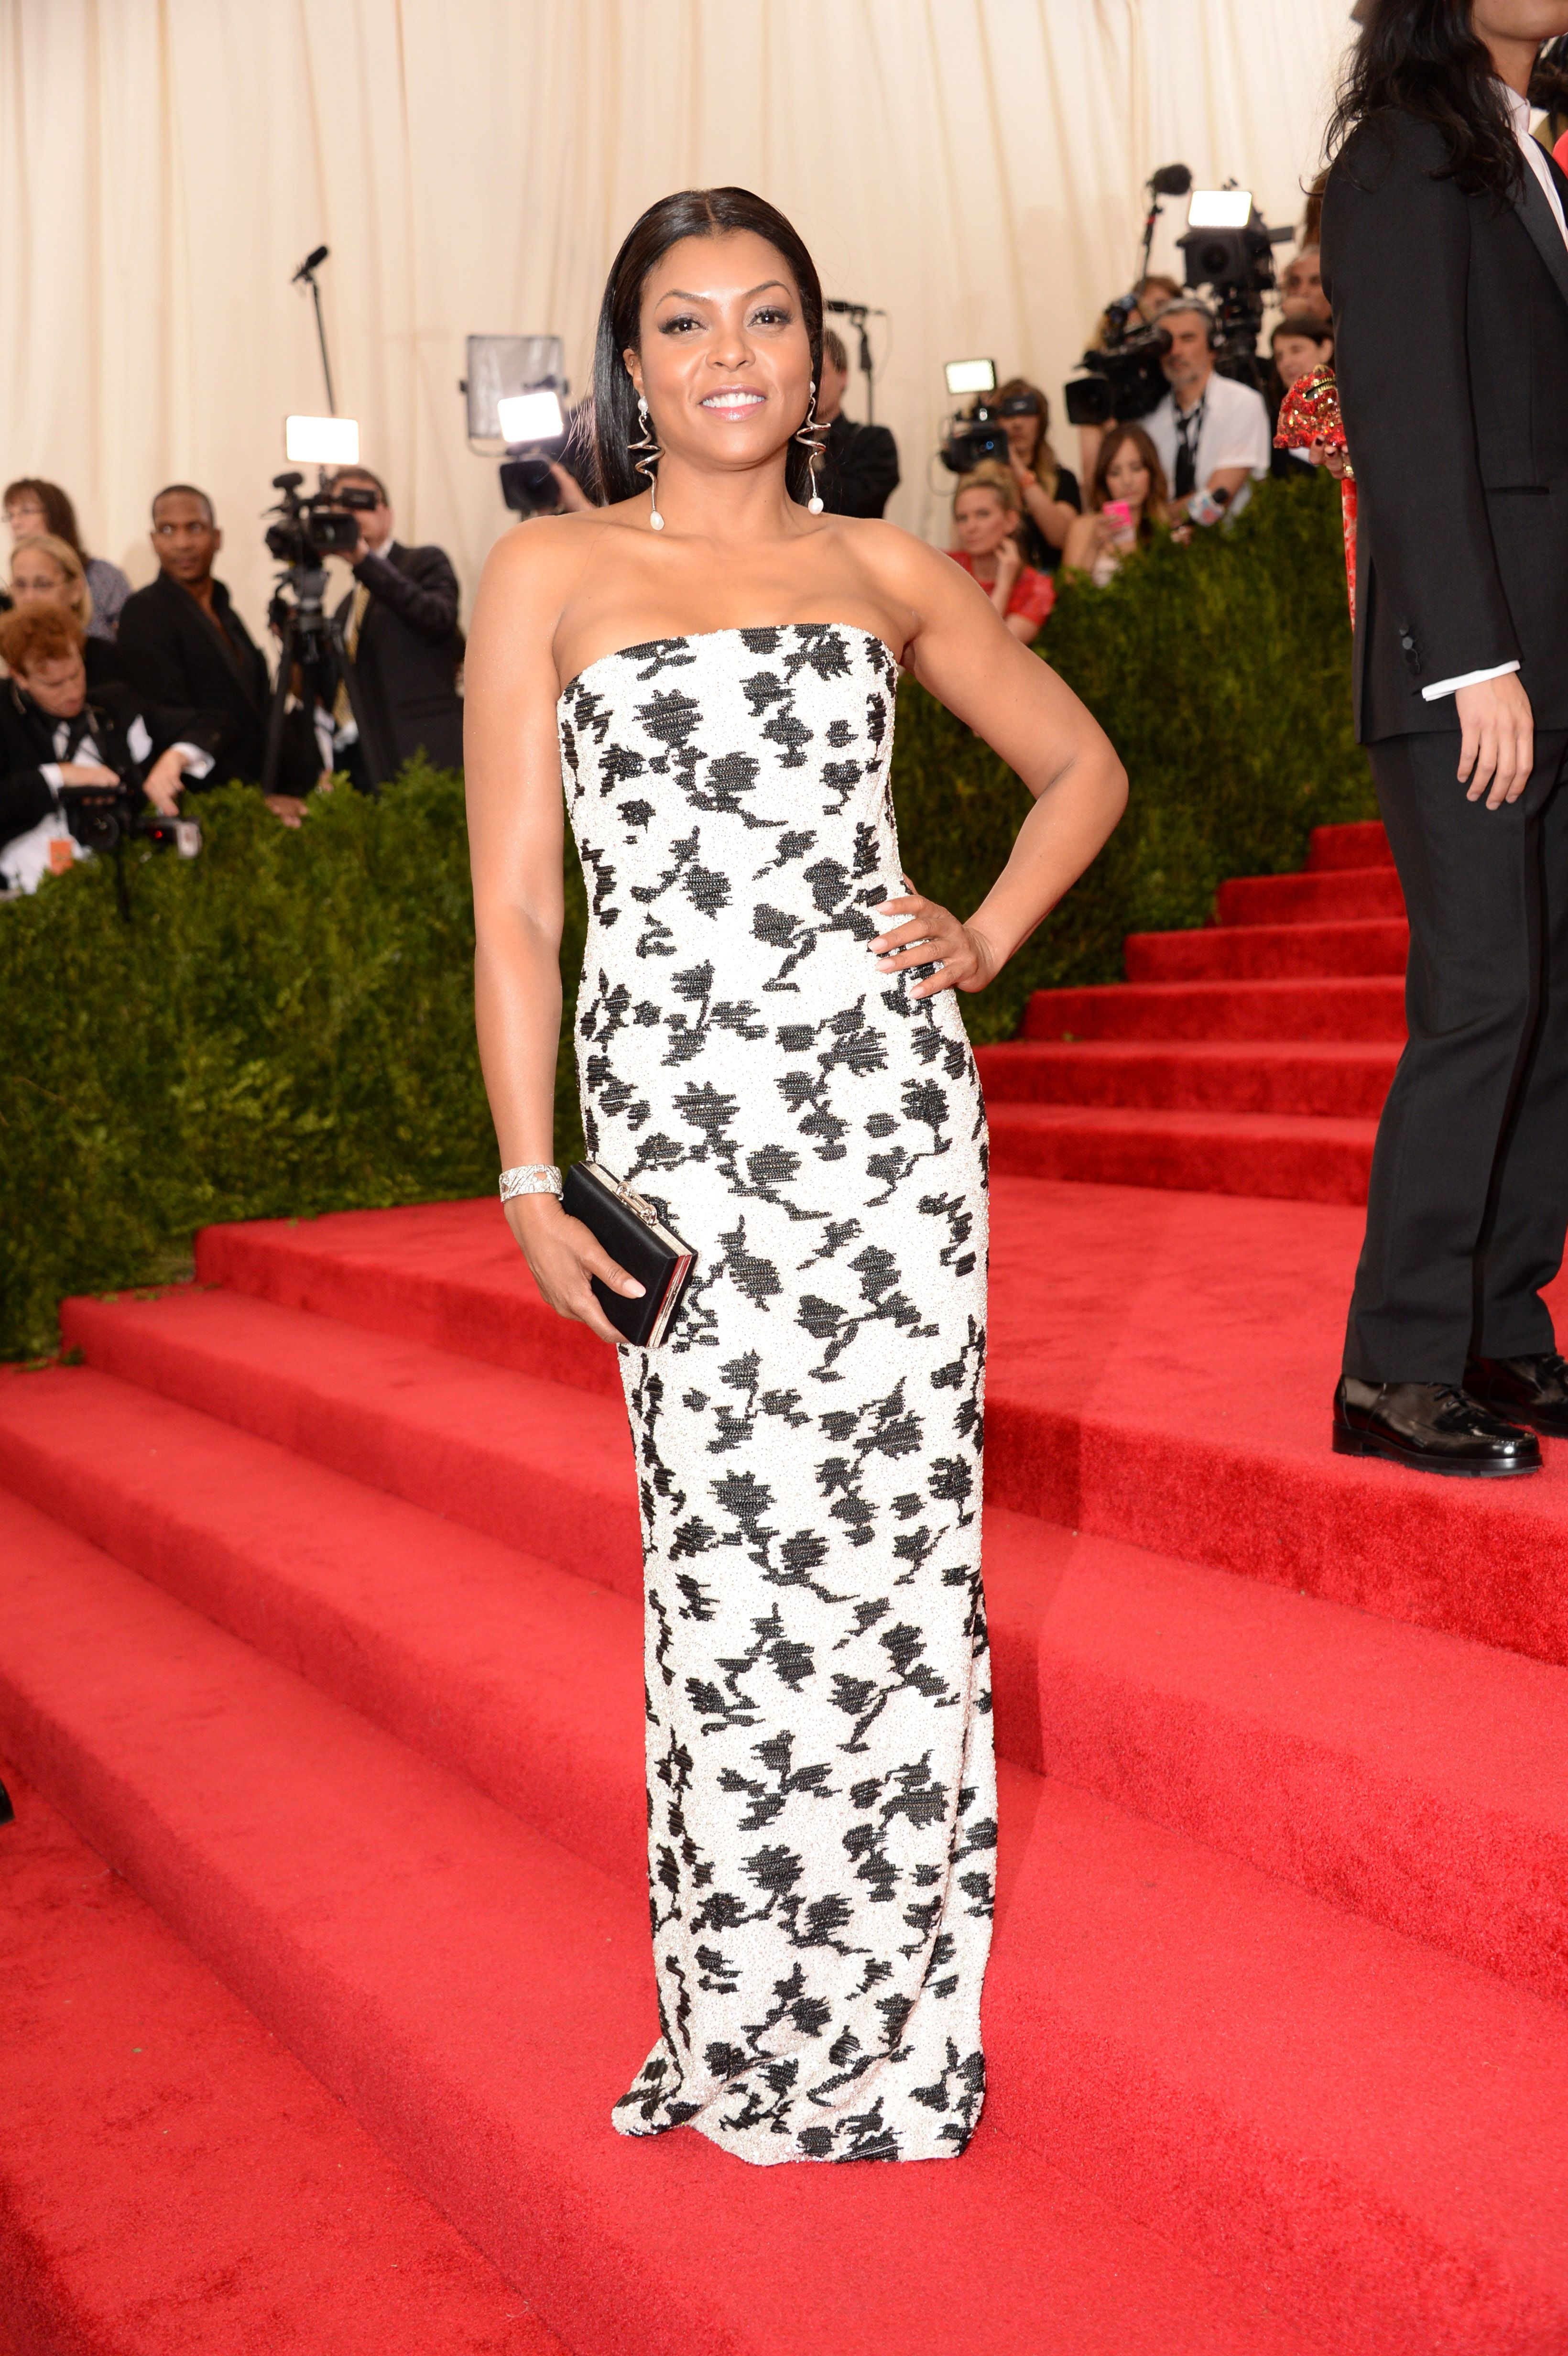 """Taraji P. Henson According to The New York Post , Taraji P. Henson had to back out last minute to attend the funeral of """"Boyz n the Hood"""" director John Singleton. She was reportedly set to wear a design by Vera Wang."""